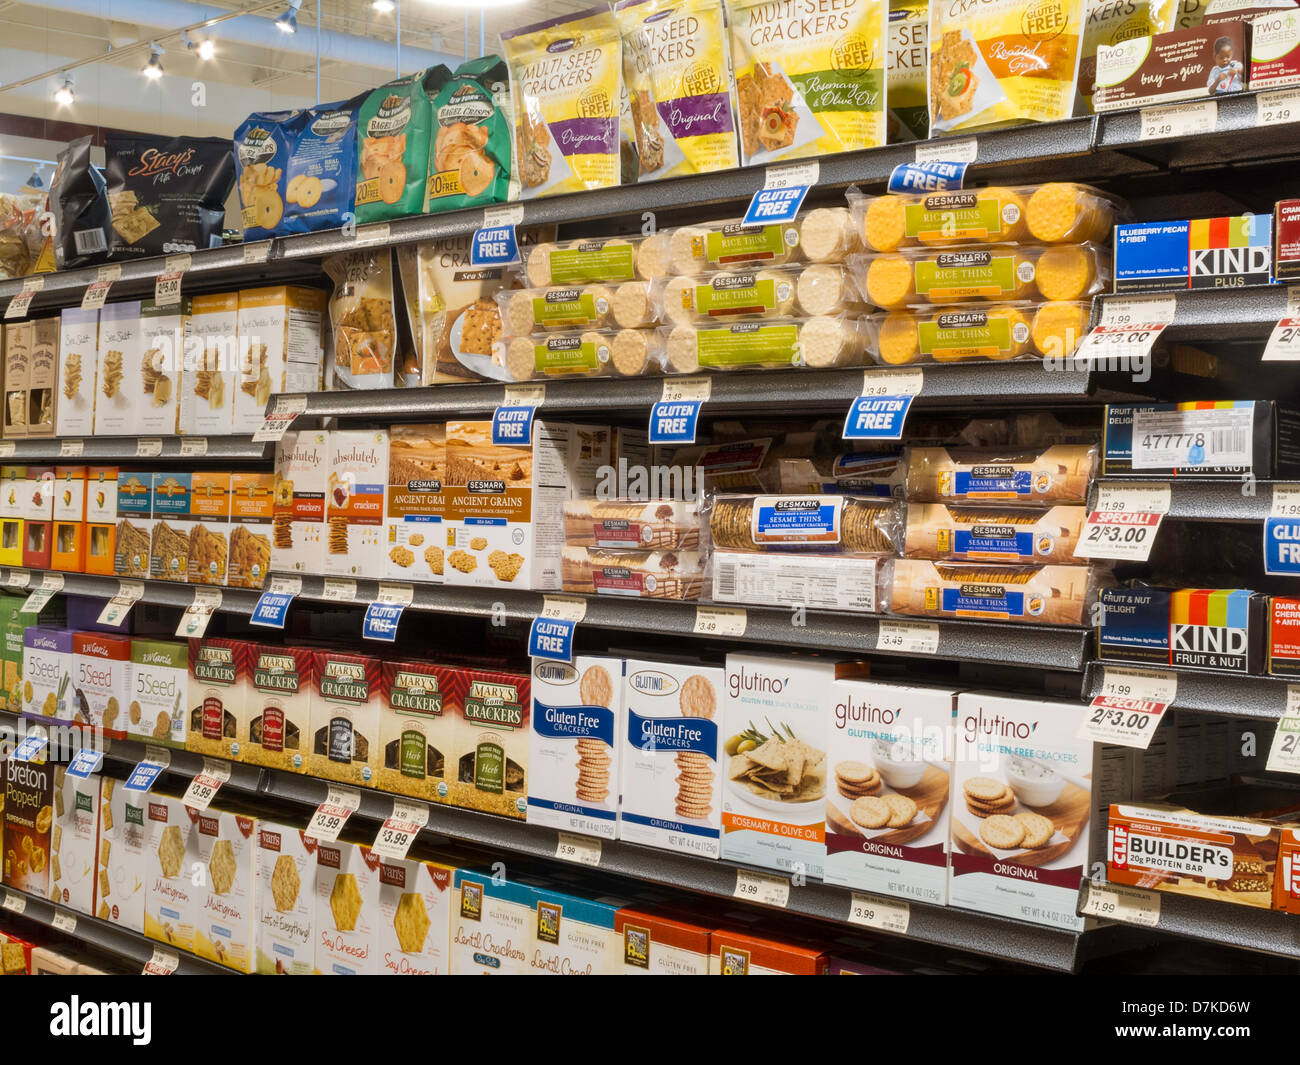 Which Supermarkets Sell Gluten Free Foods